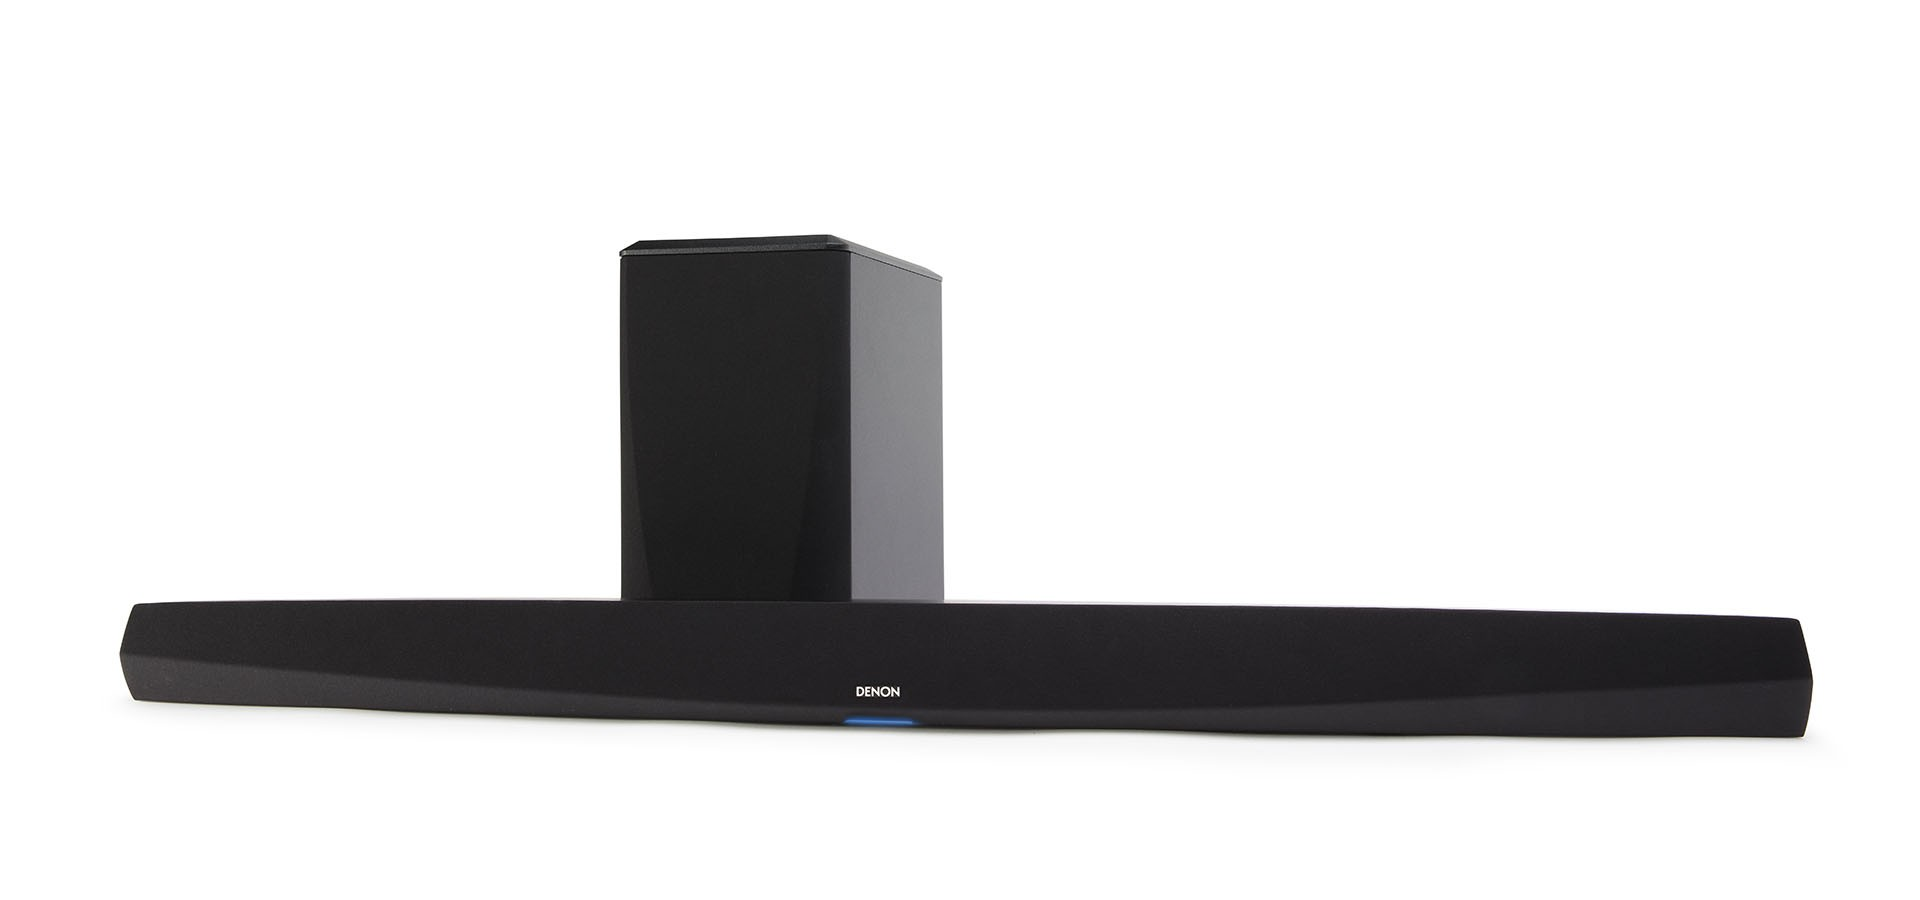 DENON DHT-S516H Black Soundbar & Wireless Subwoofer w/ HEOS